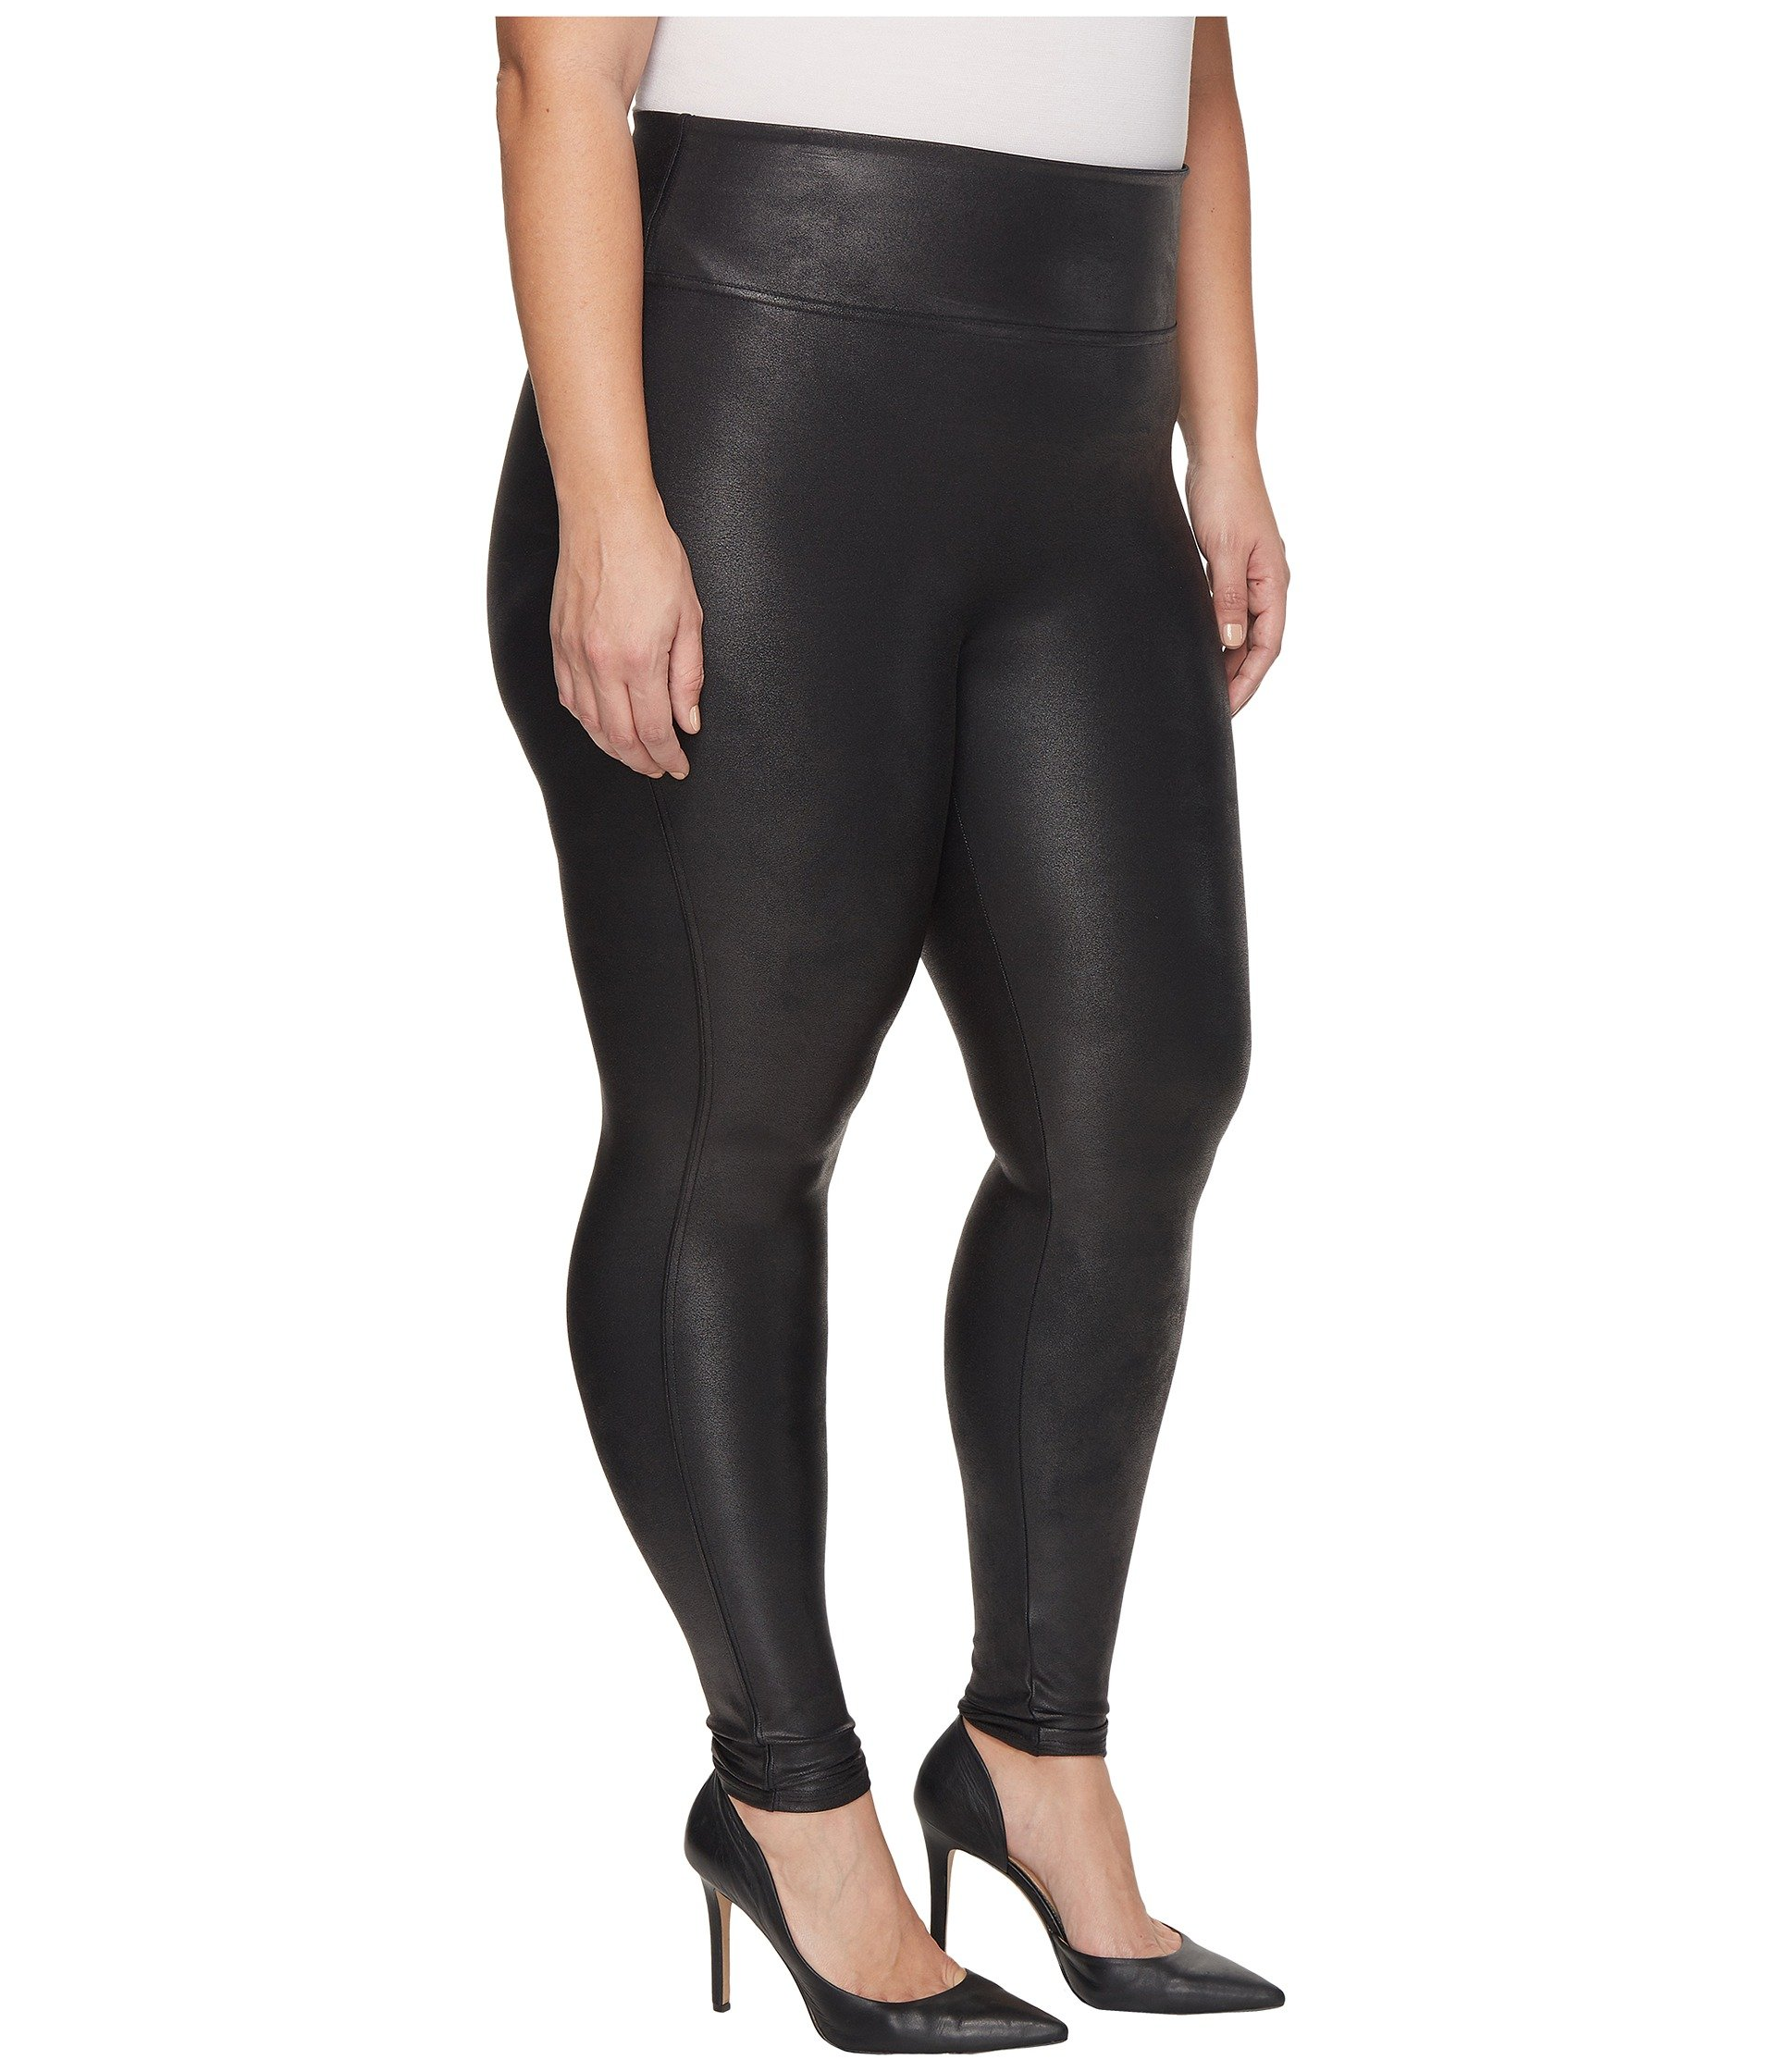 Spanx Plus Size Faux Leather Leggings At Zappos Com